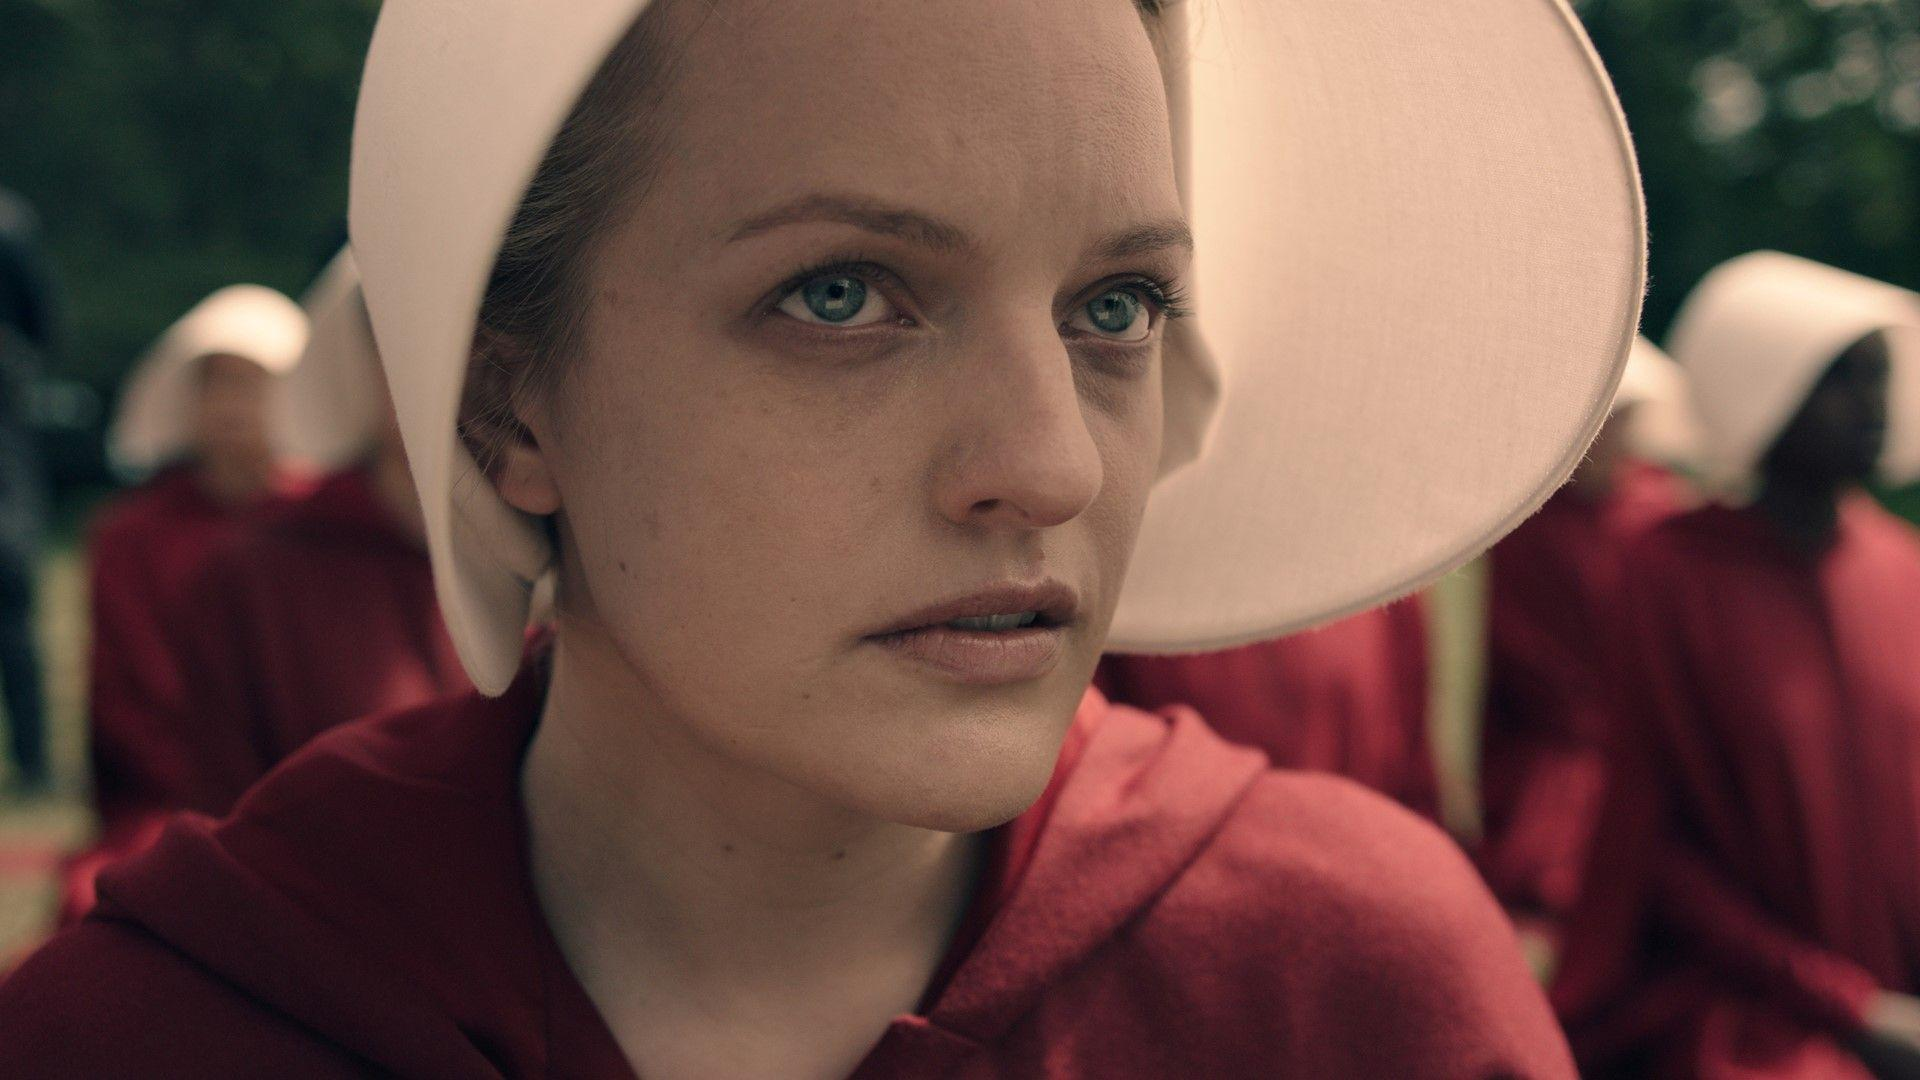 Telling The Handmaid's Tale with Dolby Vision - Studio Daily